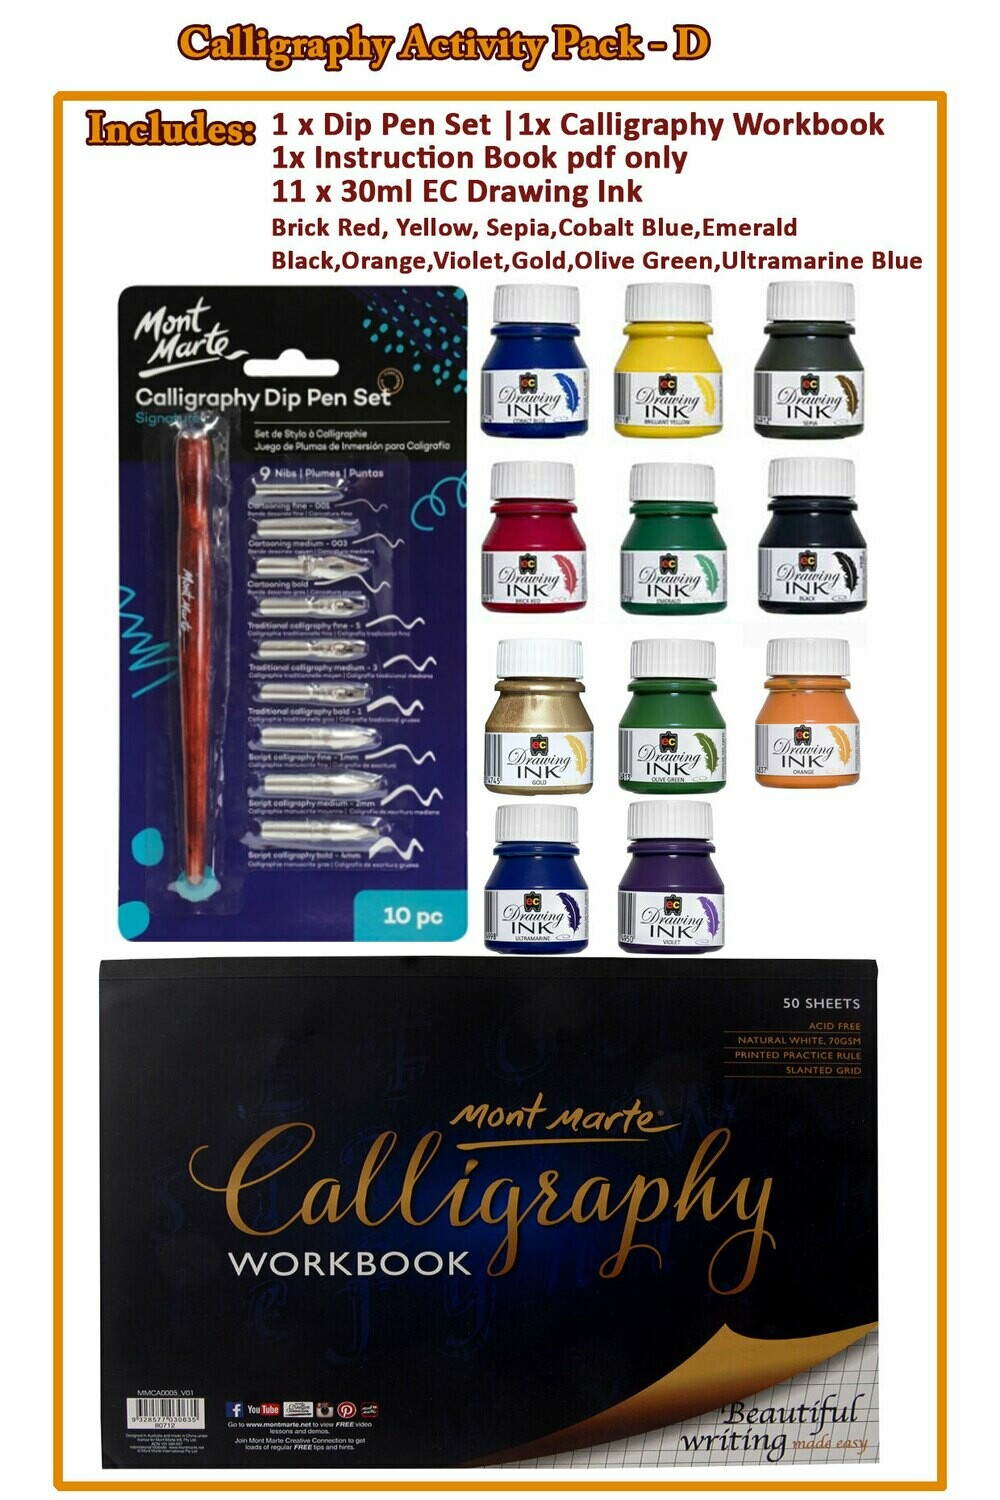 Calligraphy Activity Pack - D( PDF Instruction Book )